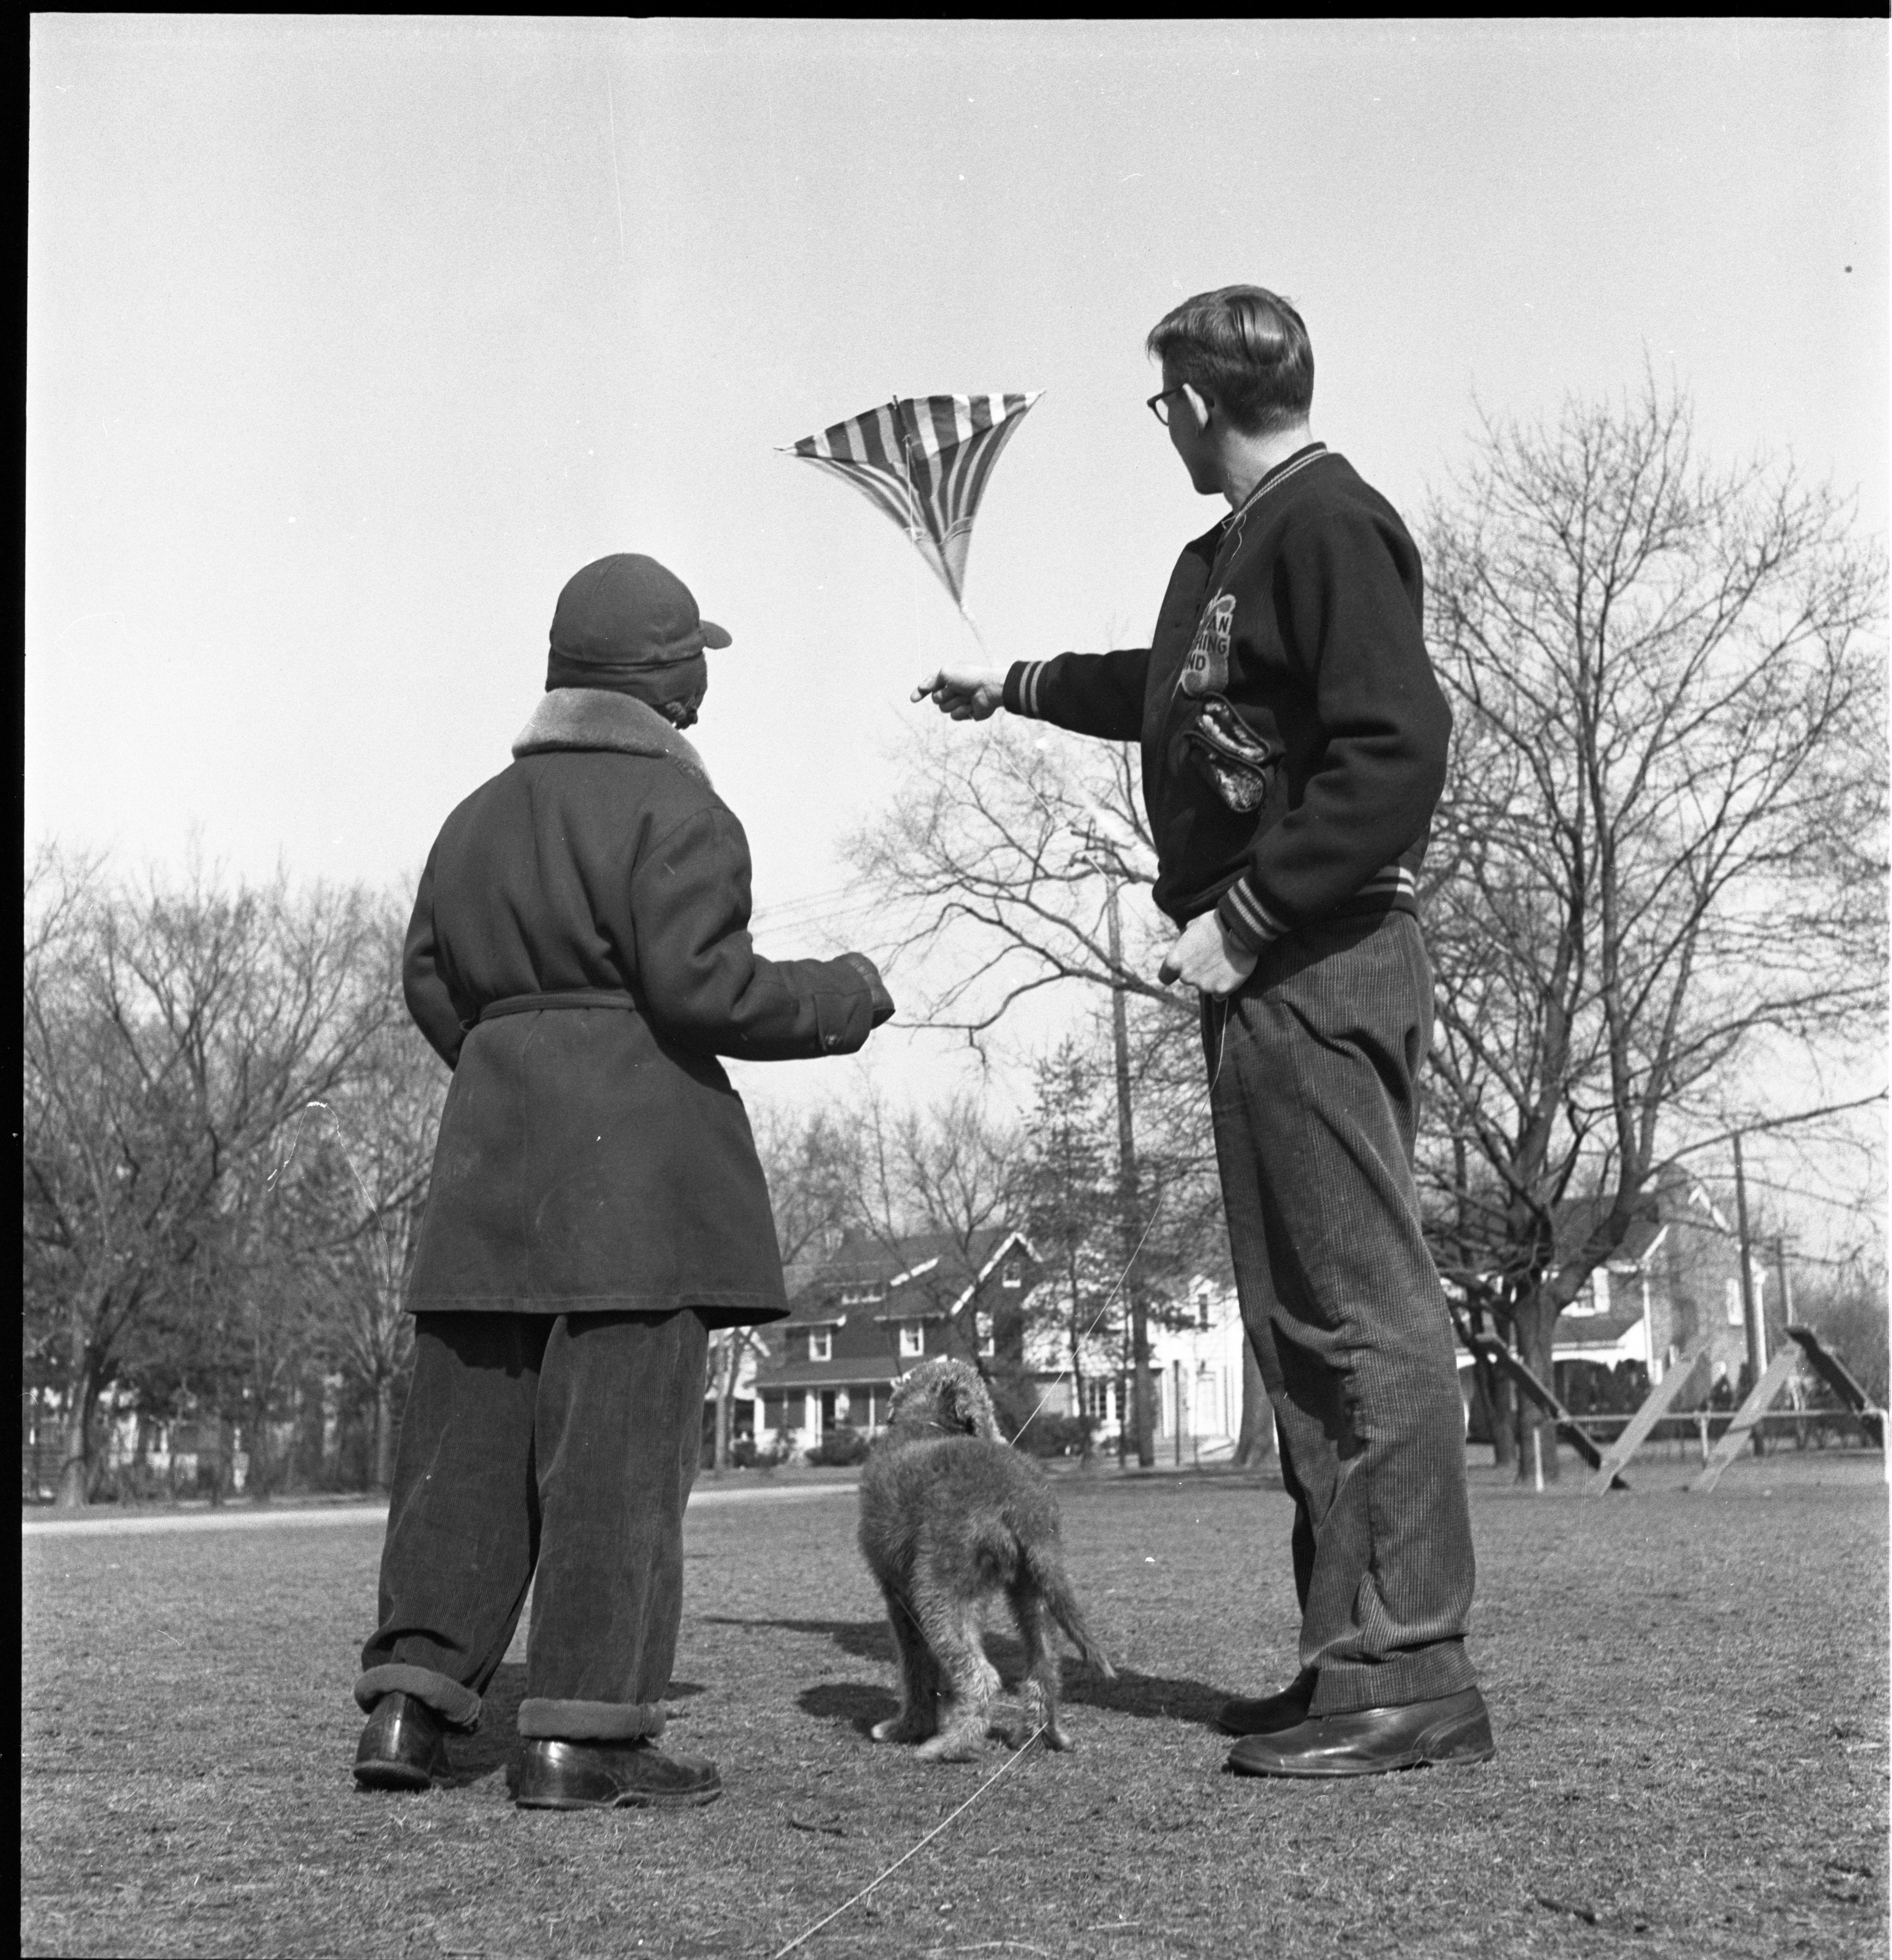 Flying A Kite On The First Day Of Spring, March 1953 image